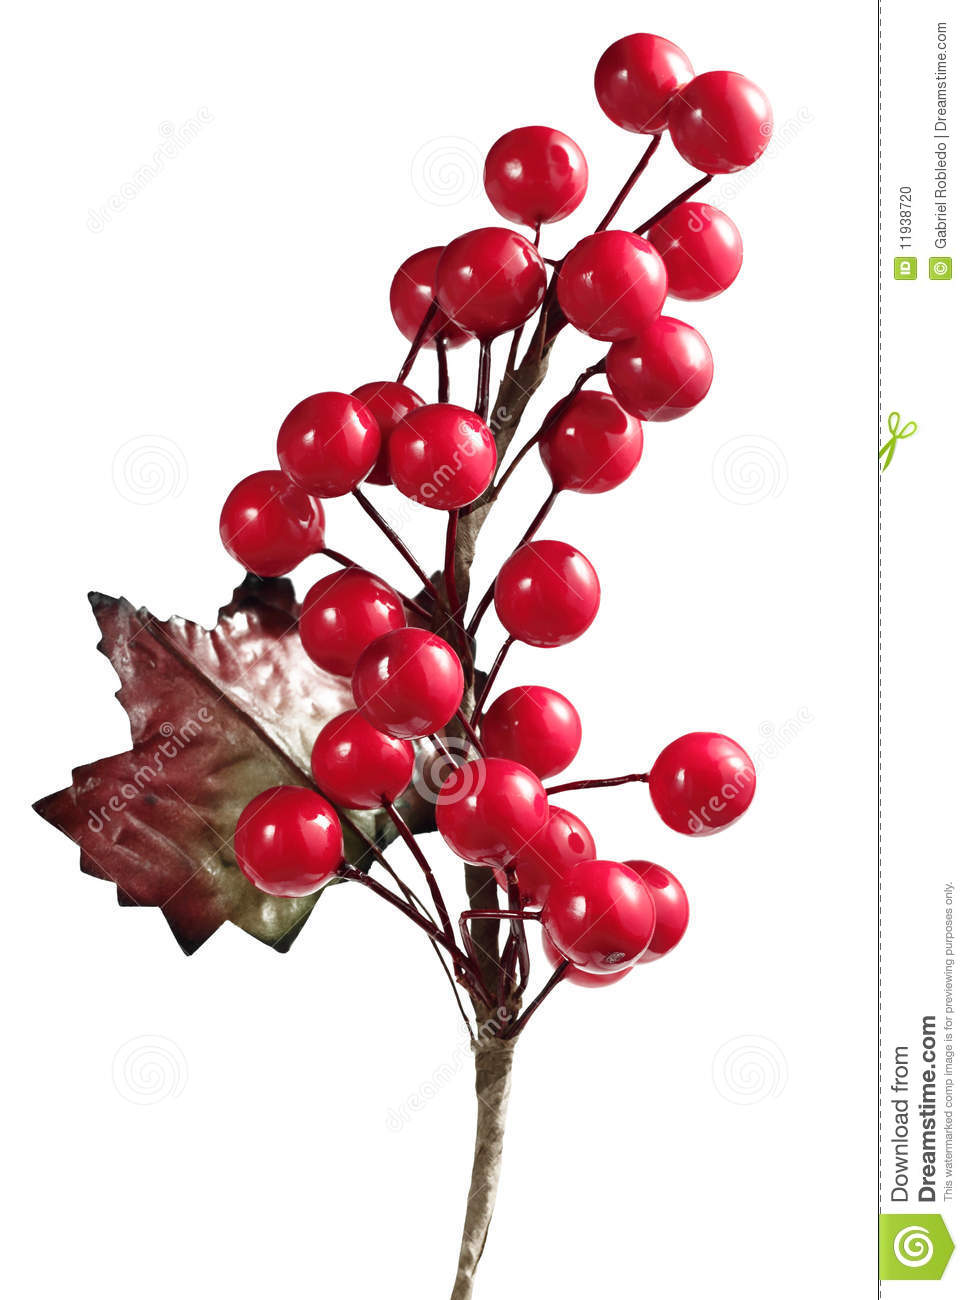 Christmas Cherry Stock Photo Image Of Decorative